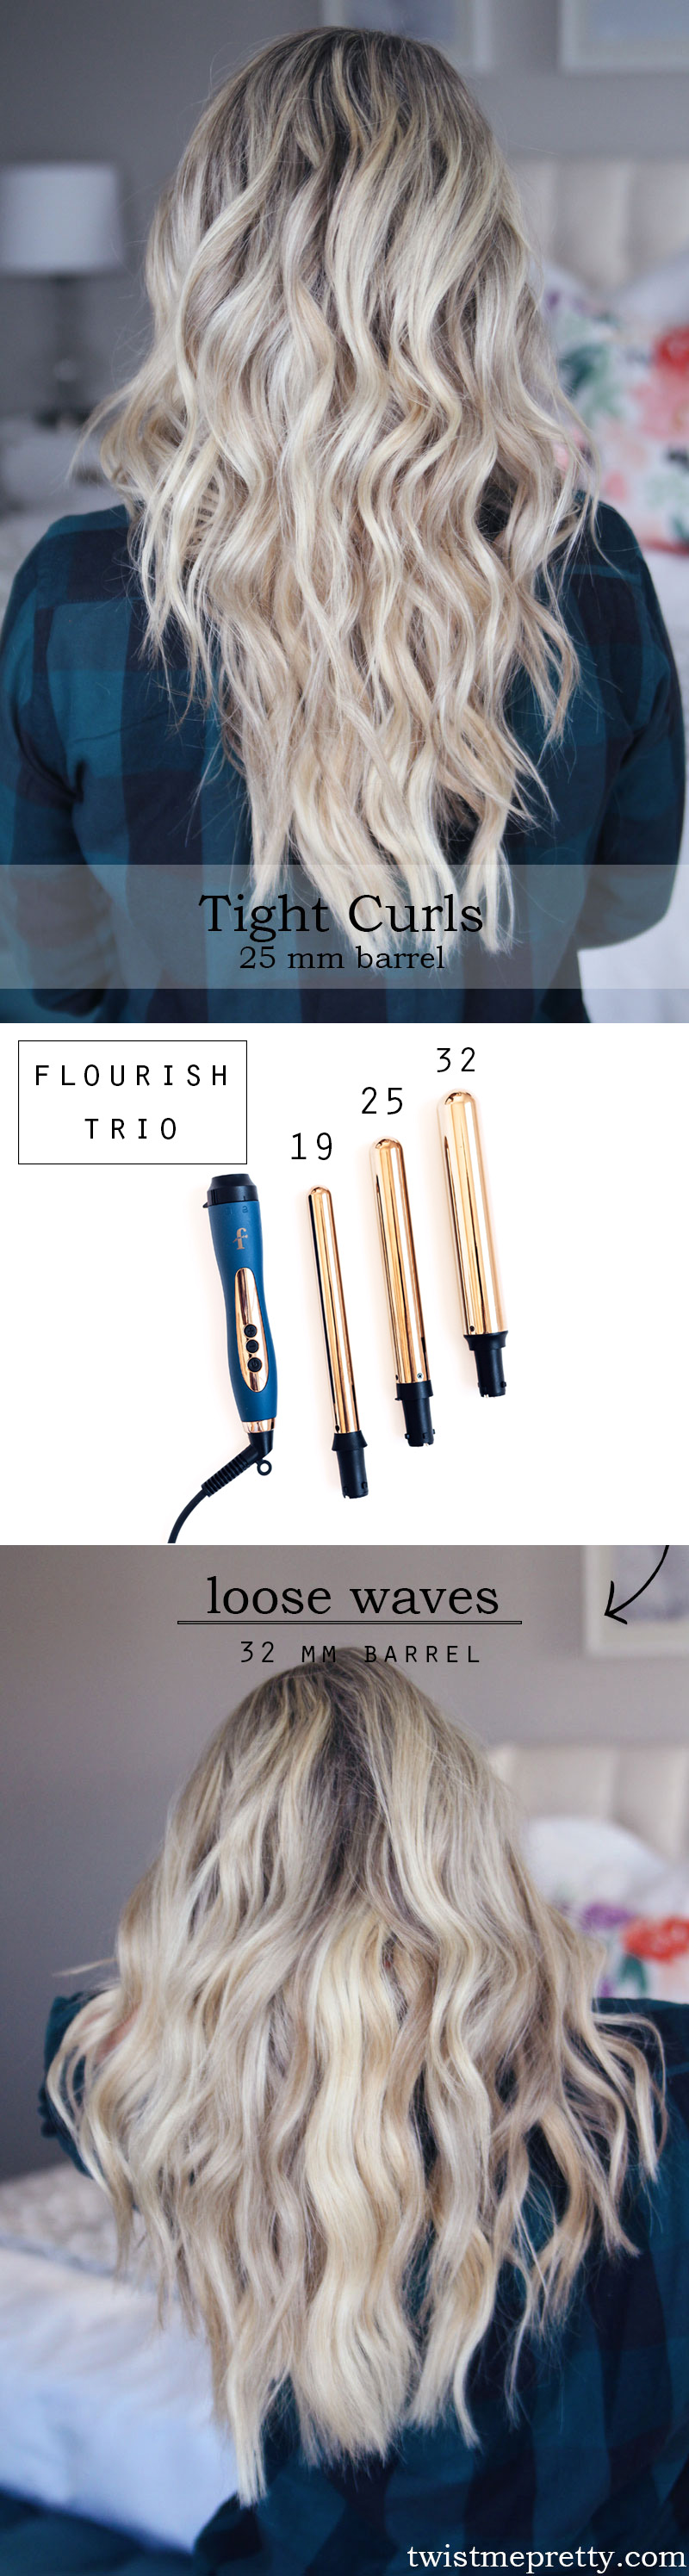 Curling Wand Sizes